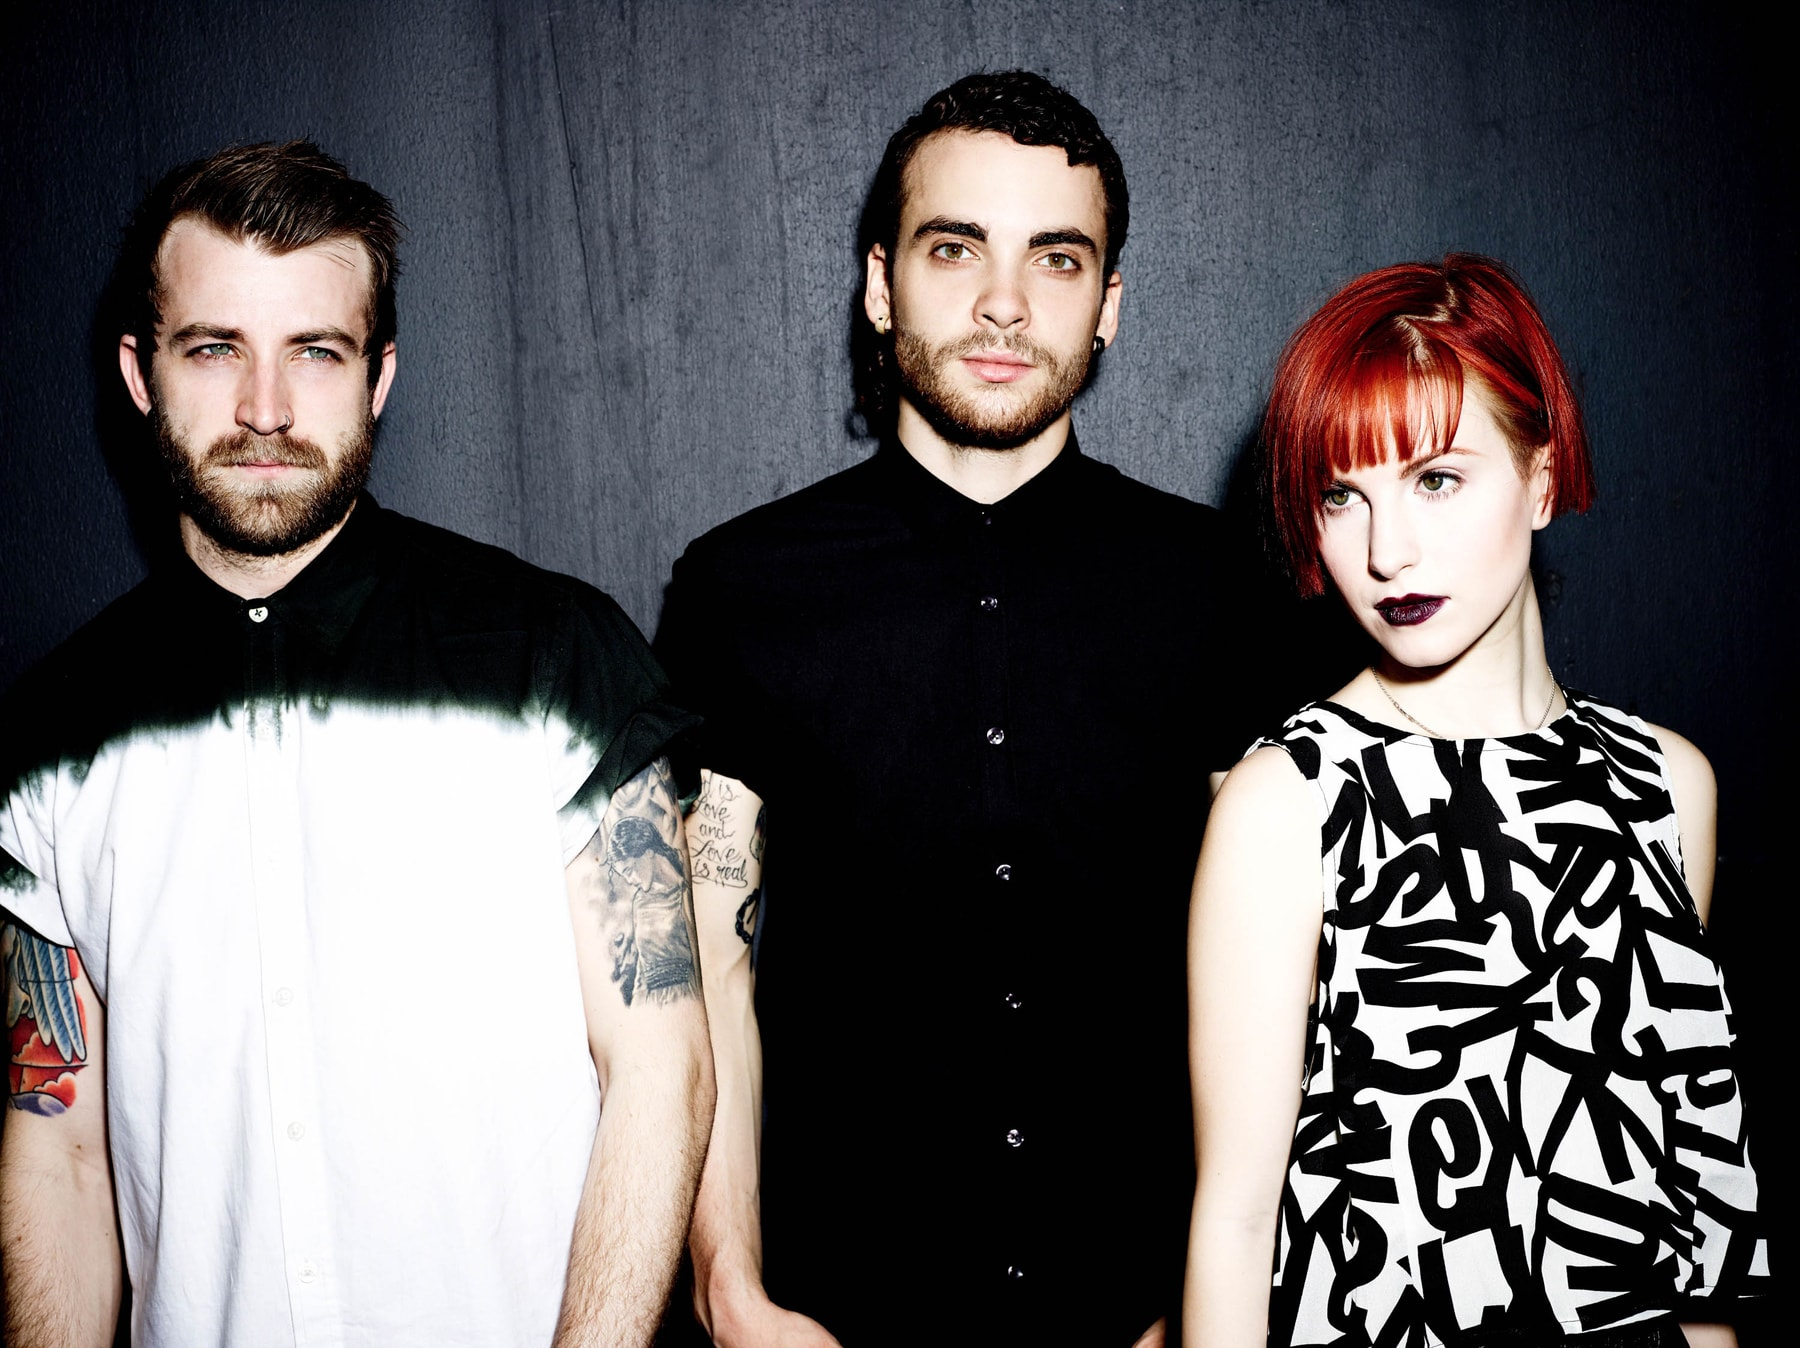 Paramore HD Wallpapers | 7wallpapers net